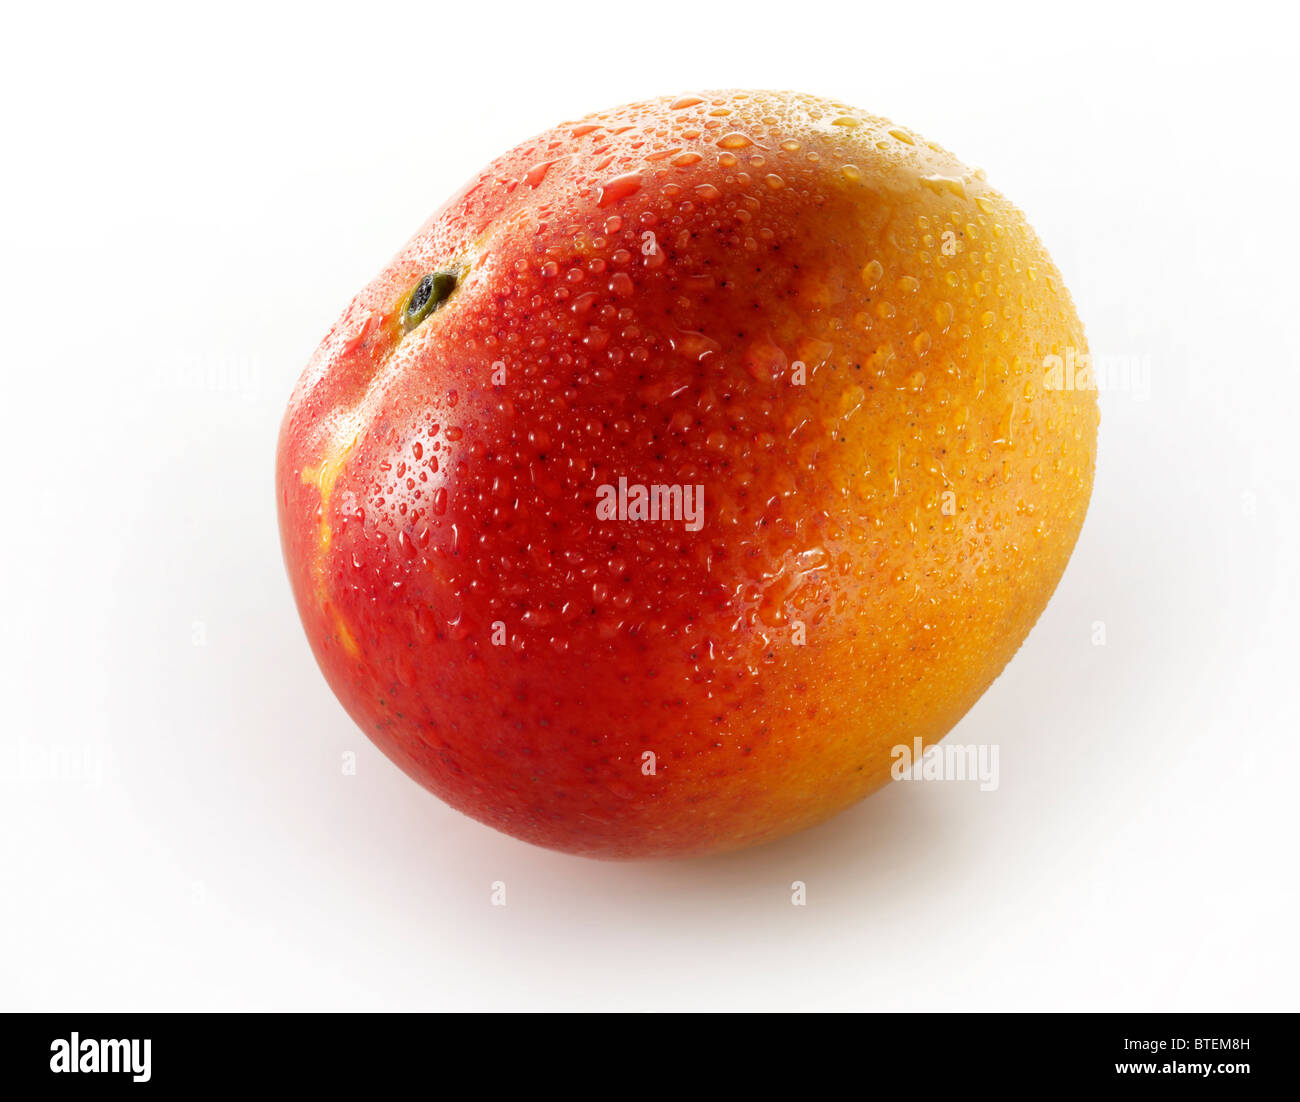 Fresh whole Mango against a white background for cut out - Stock Image